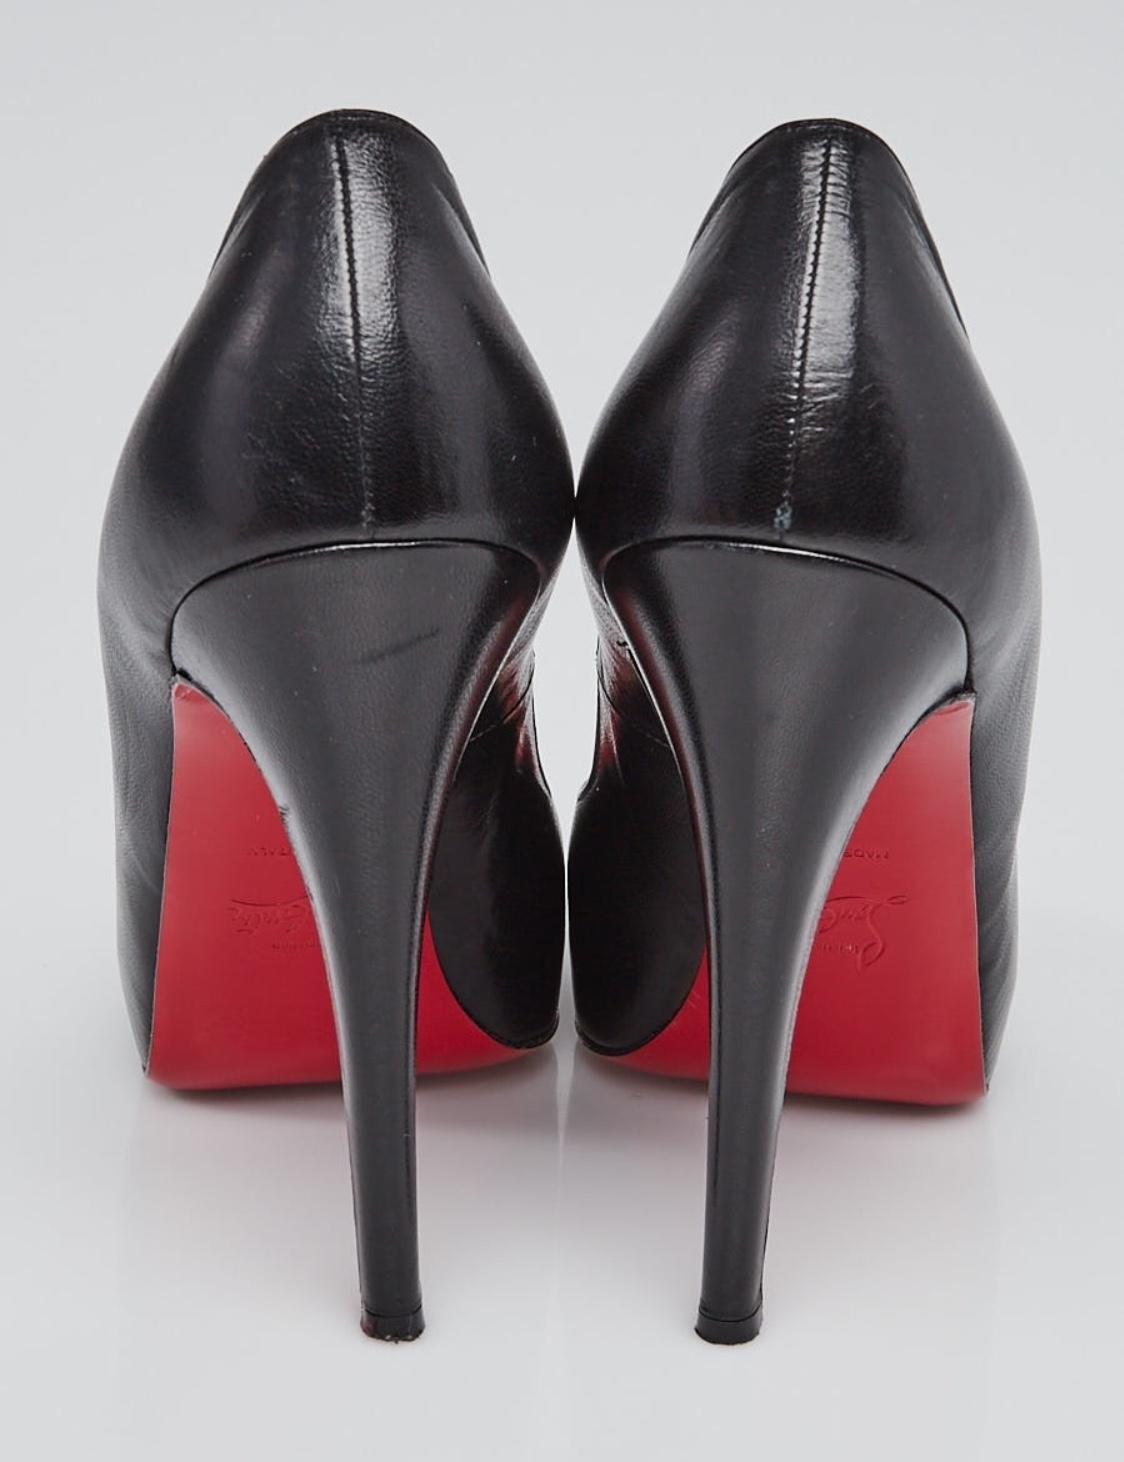 2c09a8c5f9e ... Christian Louboutin Black Leather Very Prive 120 9 Pumps Size Size Size  EU 40 (Approx